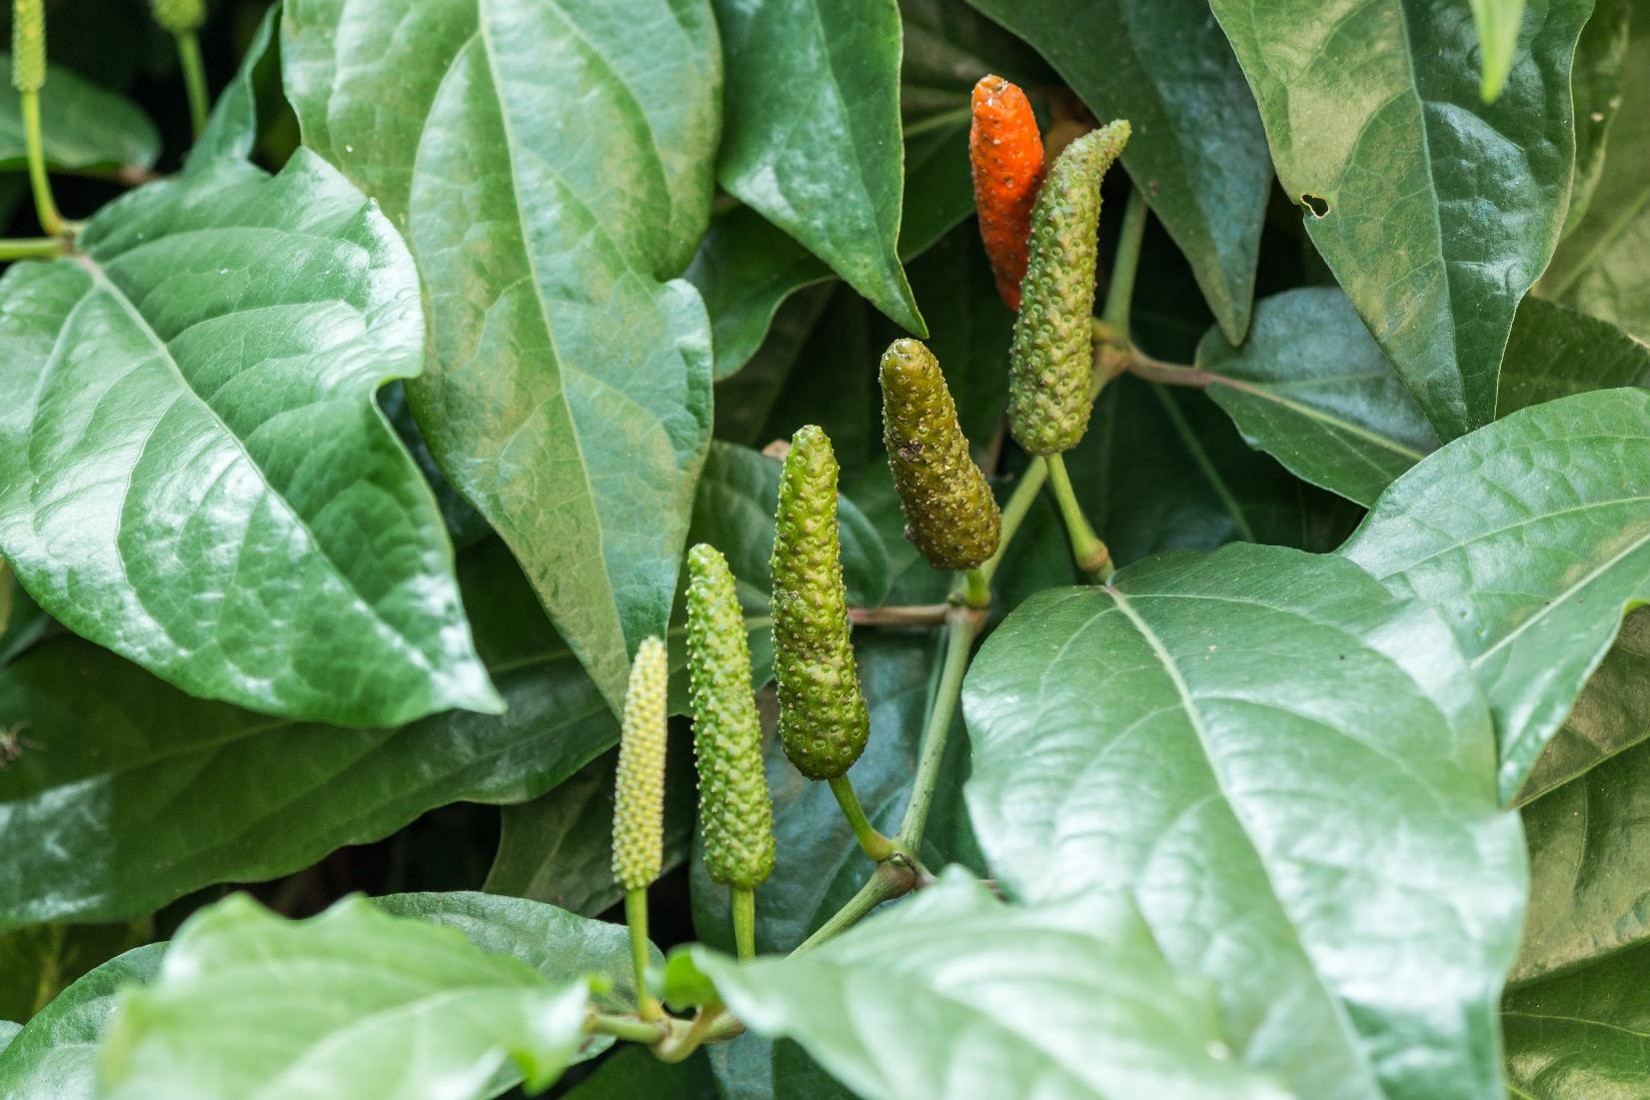 FIND OUT MORE ABOUT LONG PEPPER